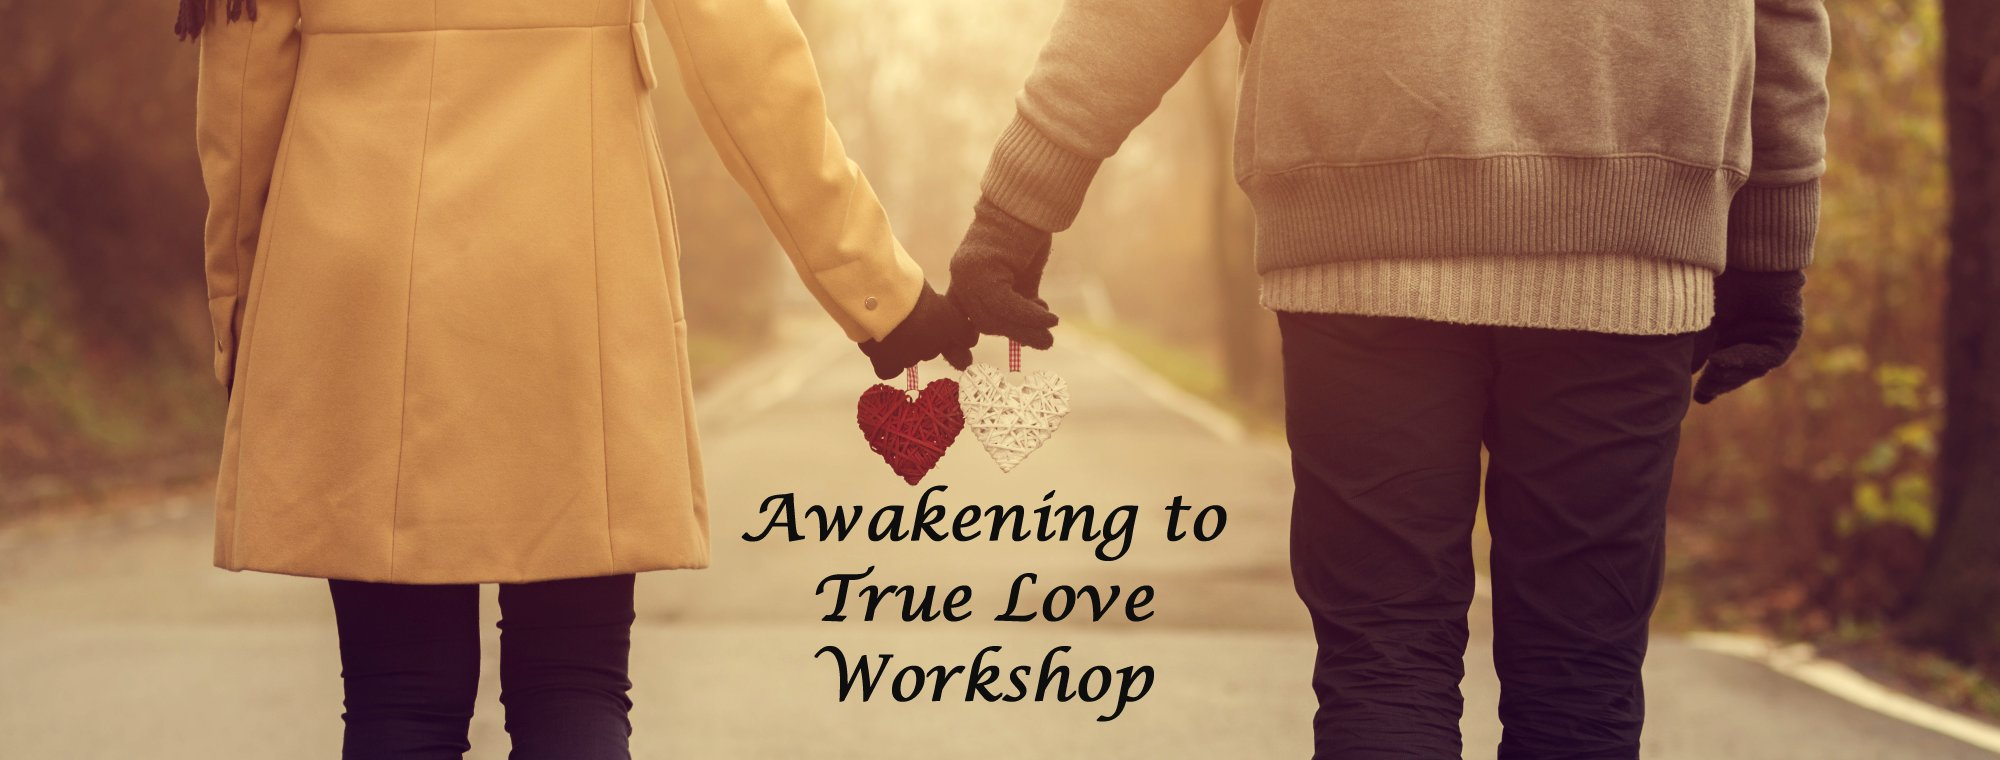 Awakening to true love workshop at your location david m masters true love thecheapjerseys Image collections